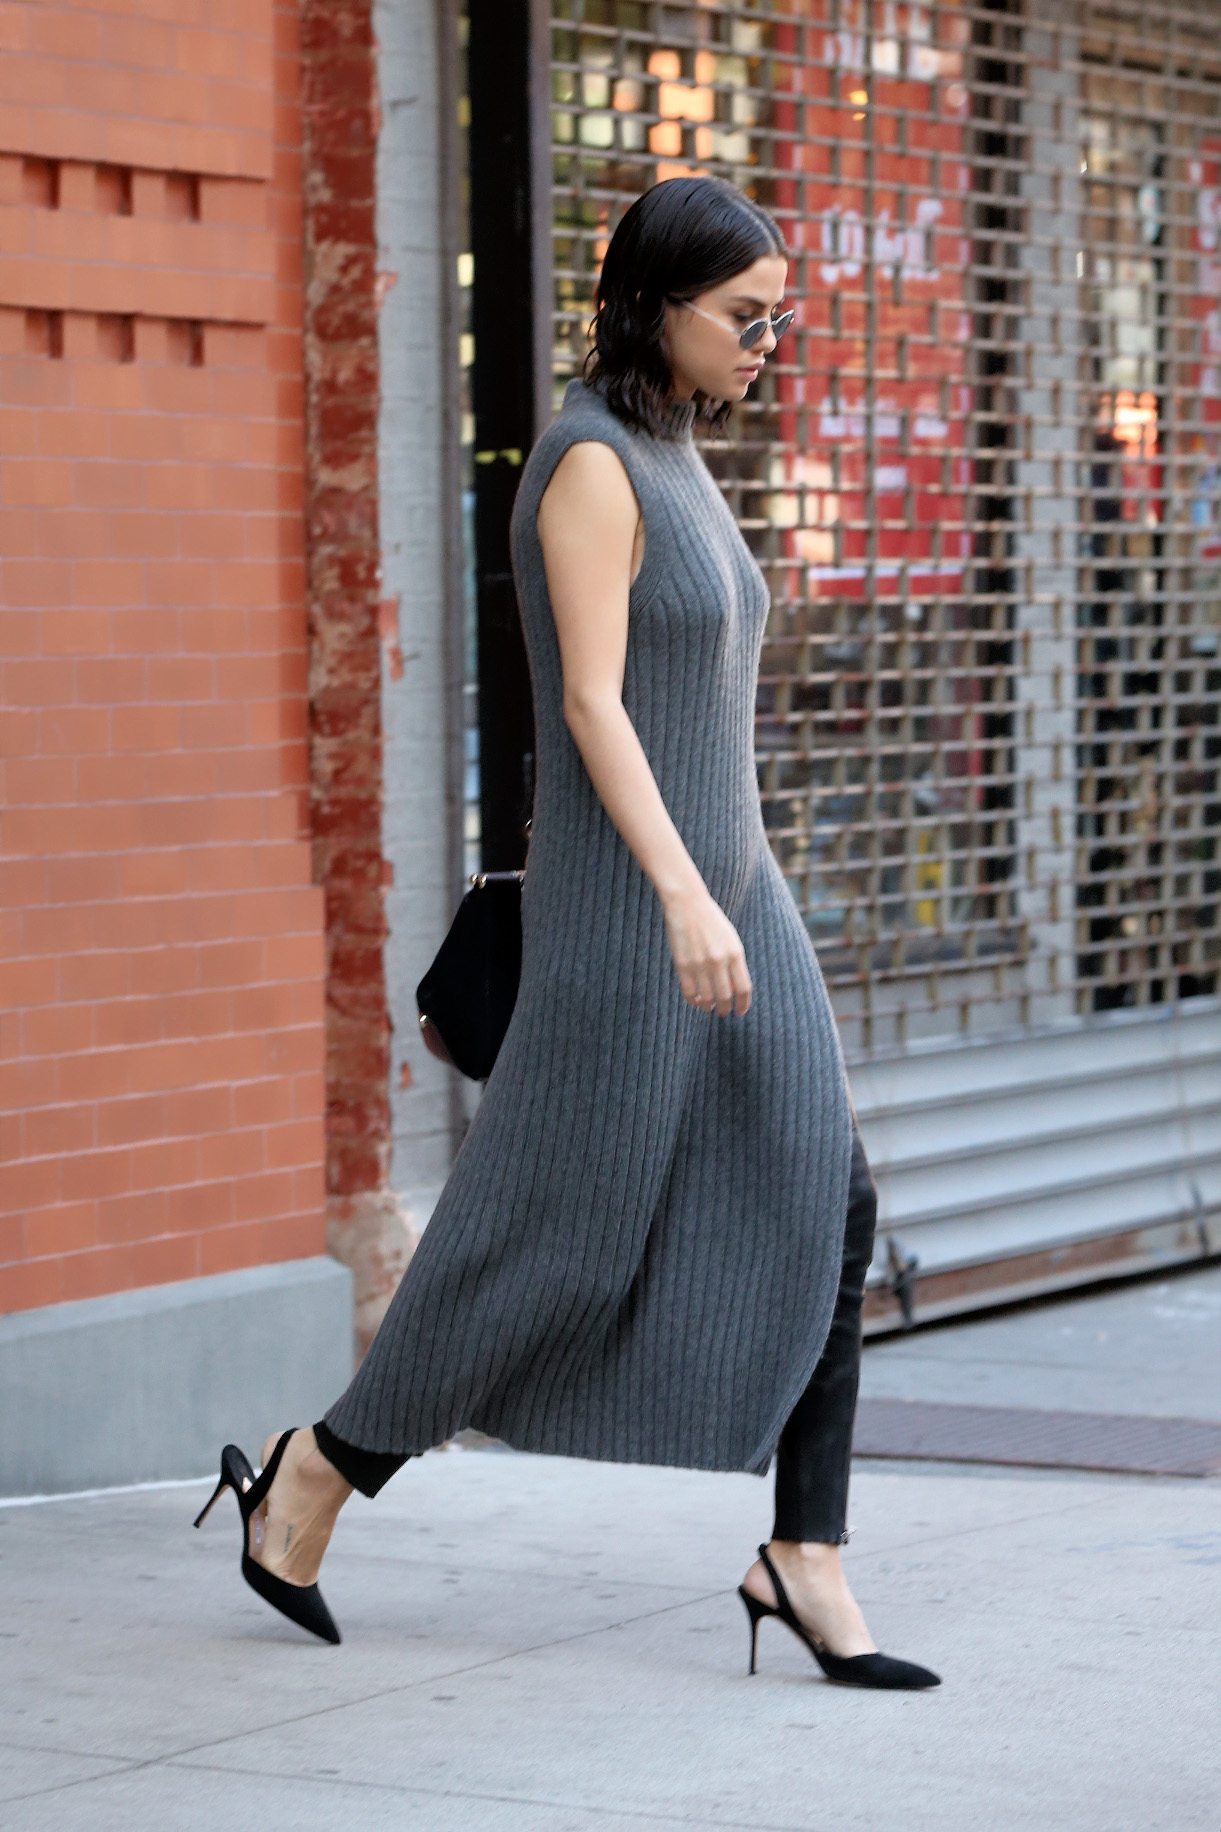 EXCLUSIVE: Singer Selena Gomez, wearing a full-length grey sweater dress, black leather pants and slingback pumps, is spotted leaving her apartment in New York City, New York, USA.  Pictured: Selena Gomez Ref: SPL1606953 221017 EXCLUSIVE Picture by: SplashNews.com  Splash News and Pictures Los Angeles: 310-821-2666 New York: 212-619-2666 London: 0207 644 7656 Milan: +39 02 4399 8577 Sydney: +61 02 9240 7700 photodesk@splashnews.com  World Rights